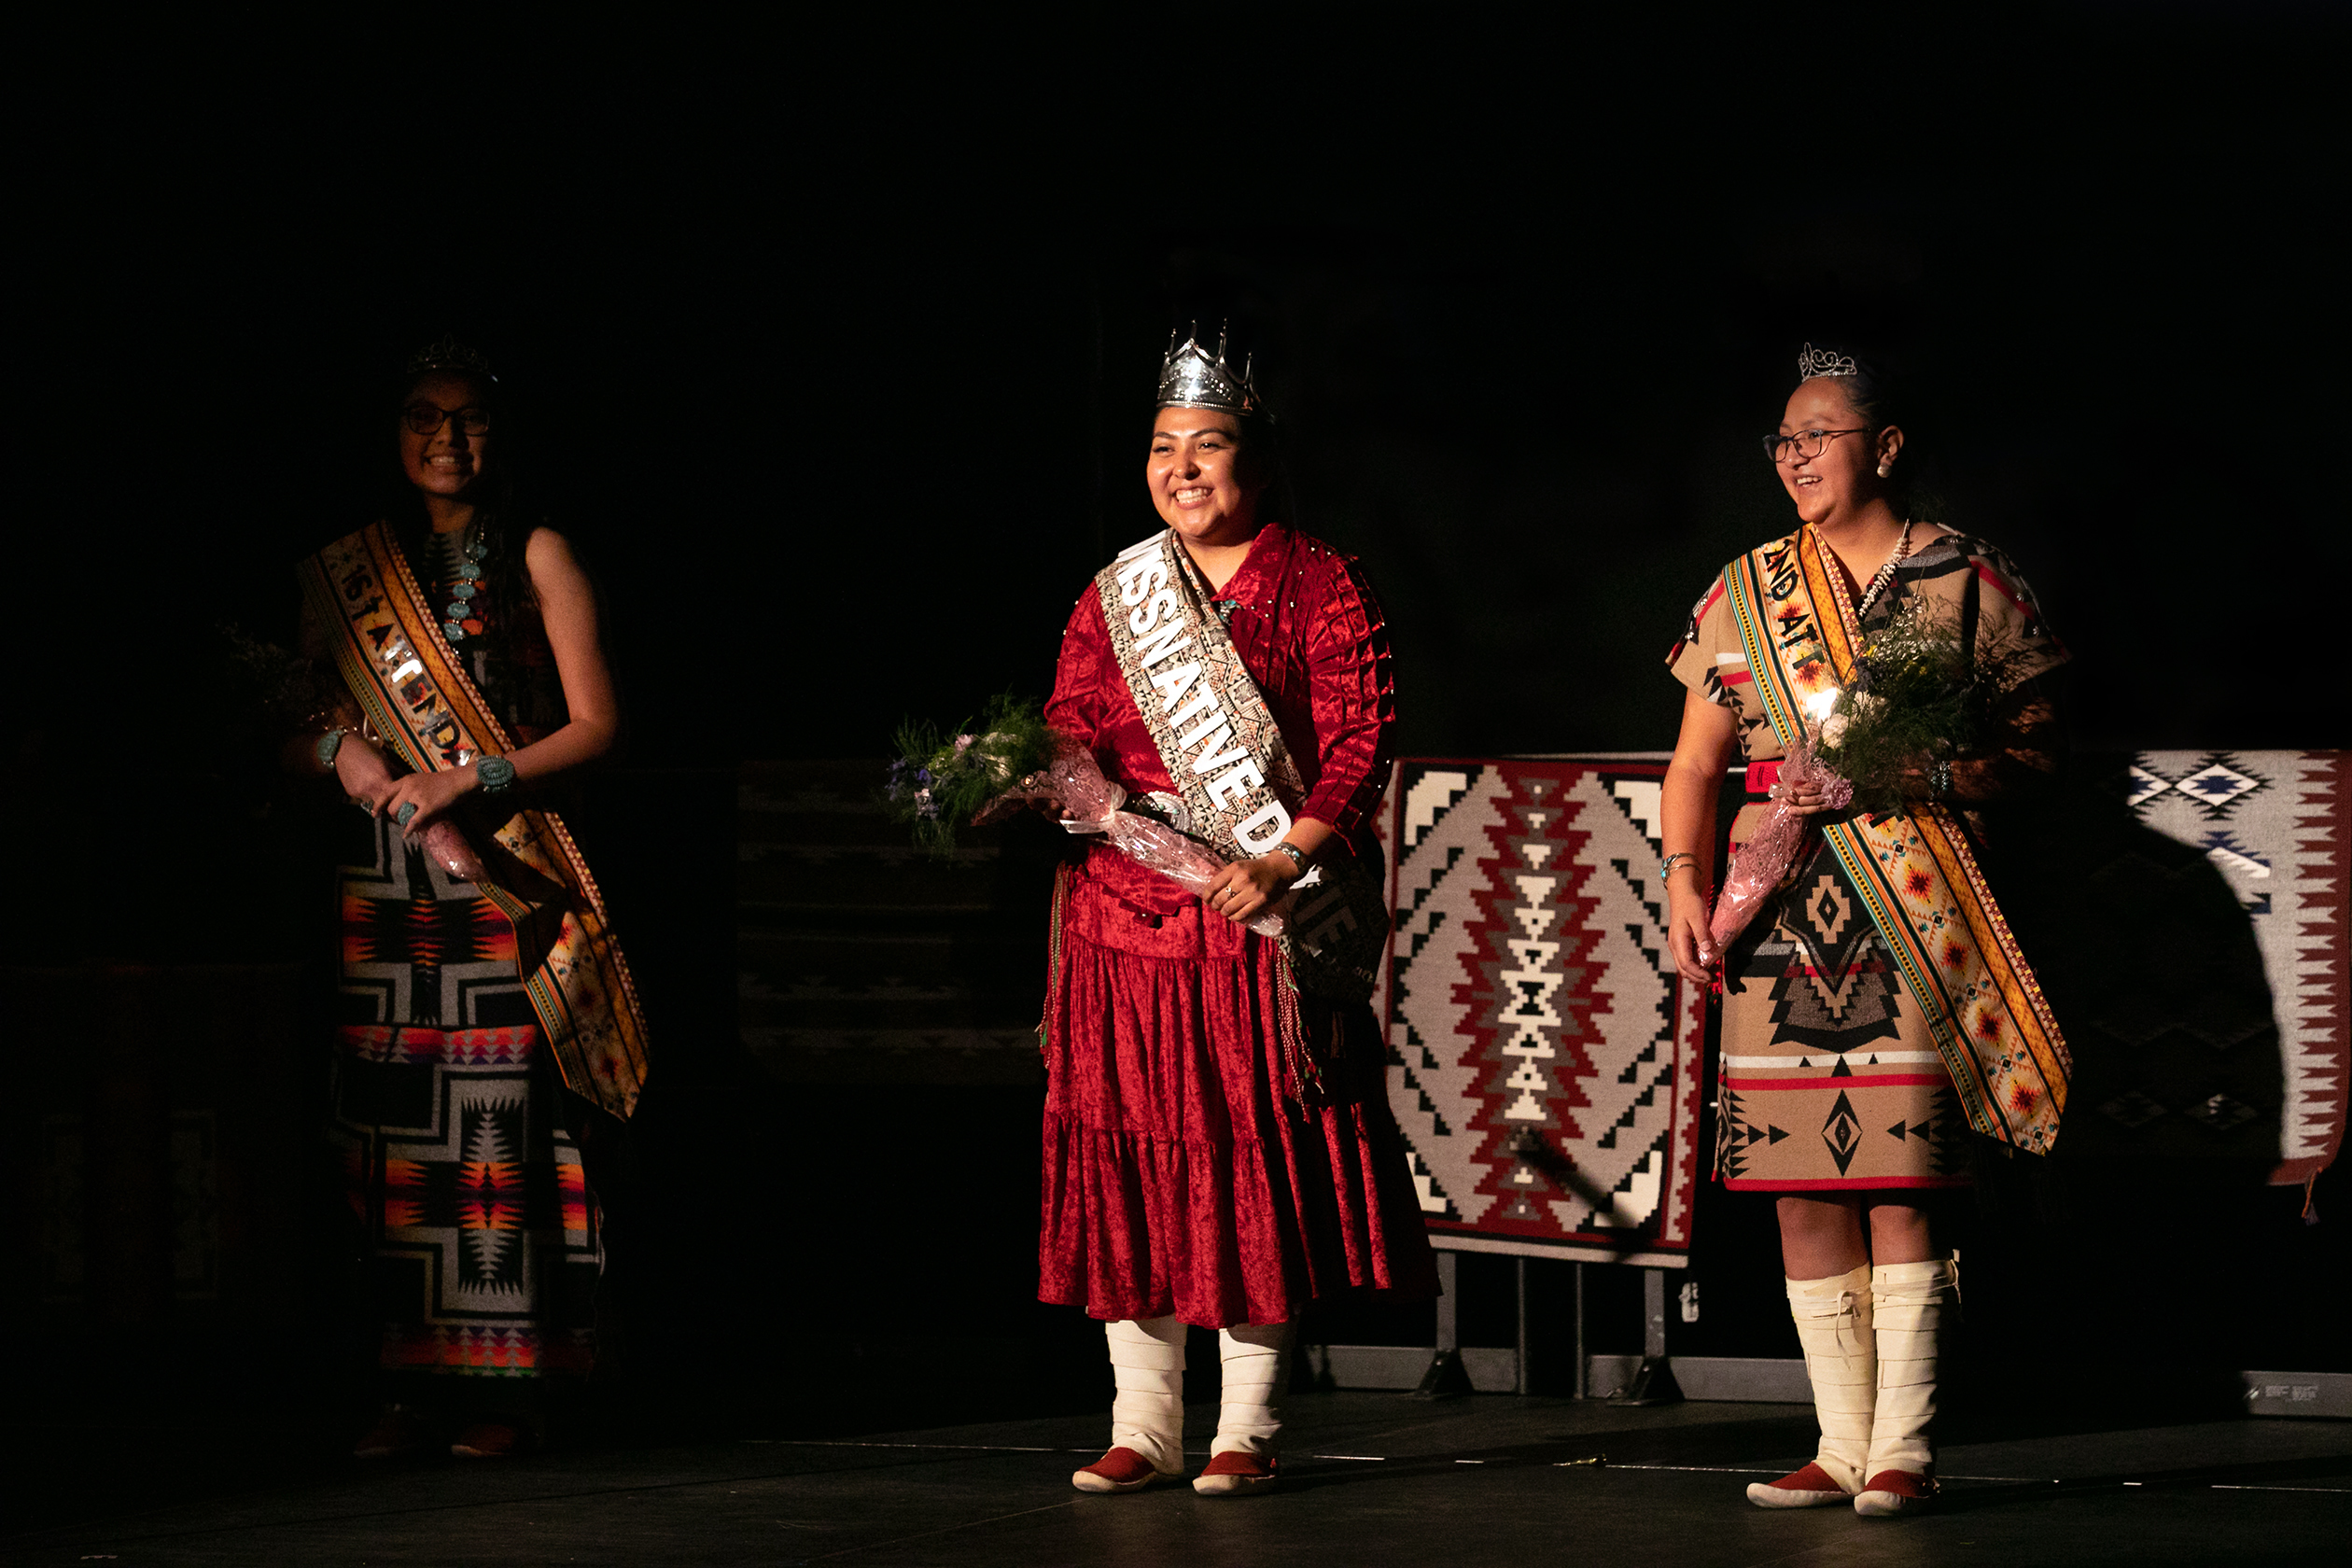 Miss native dixie state pagent 6613